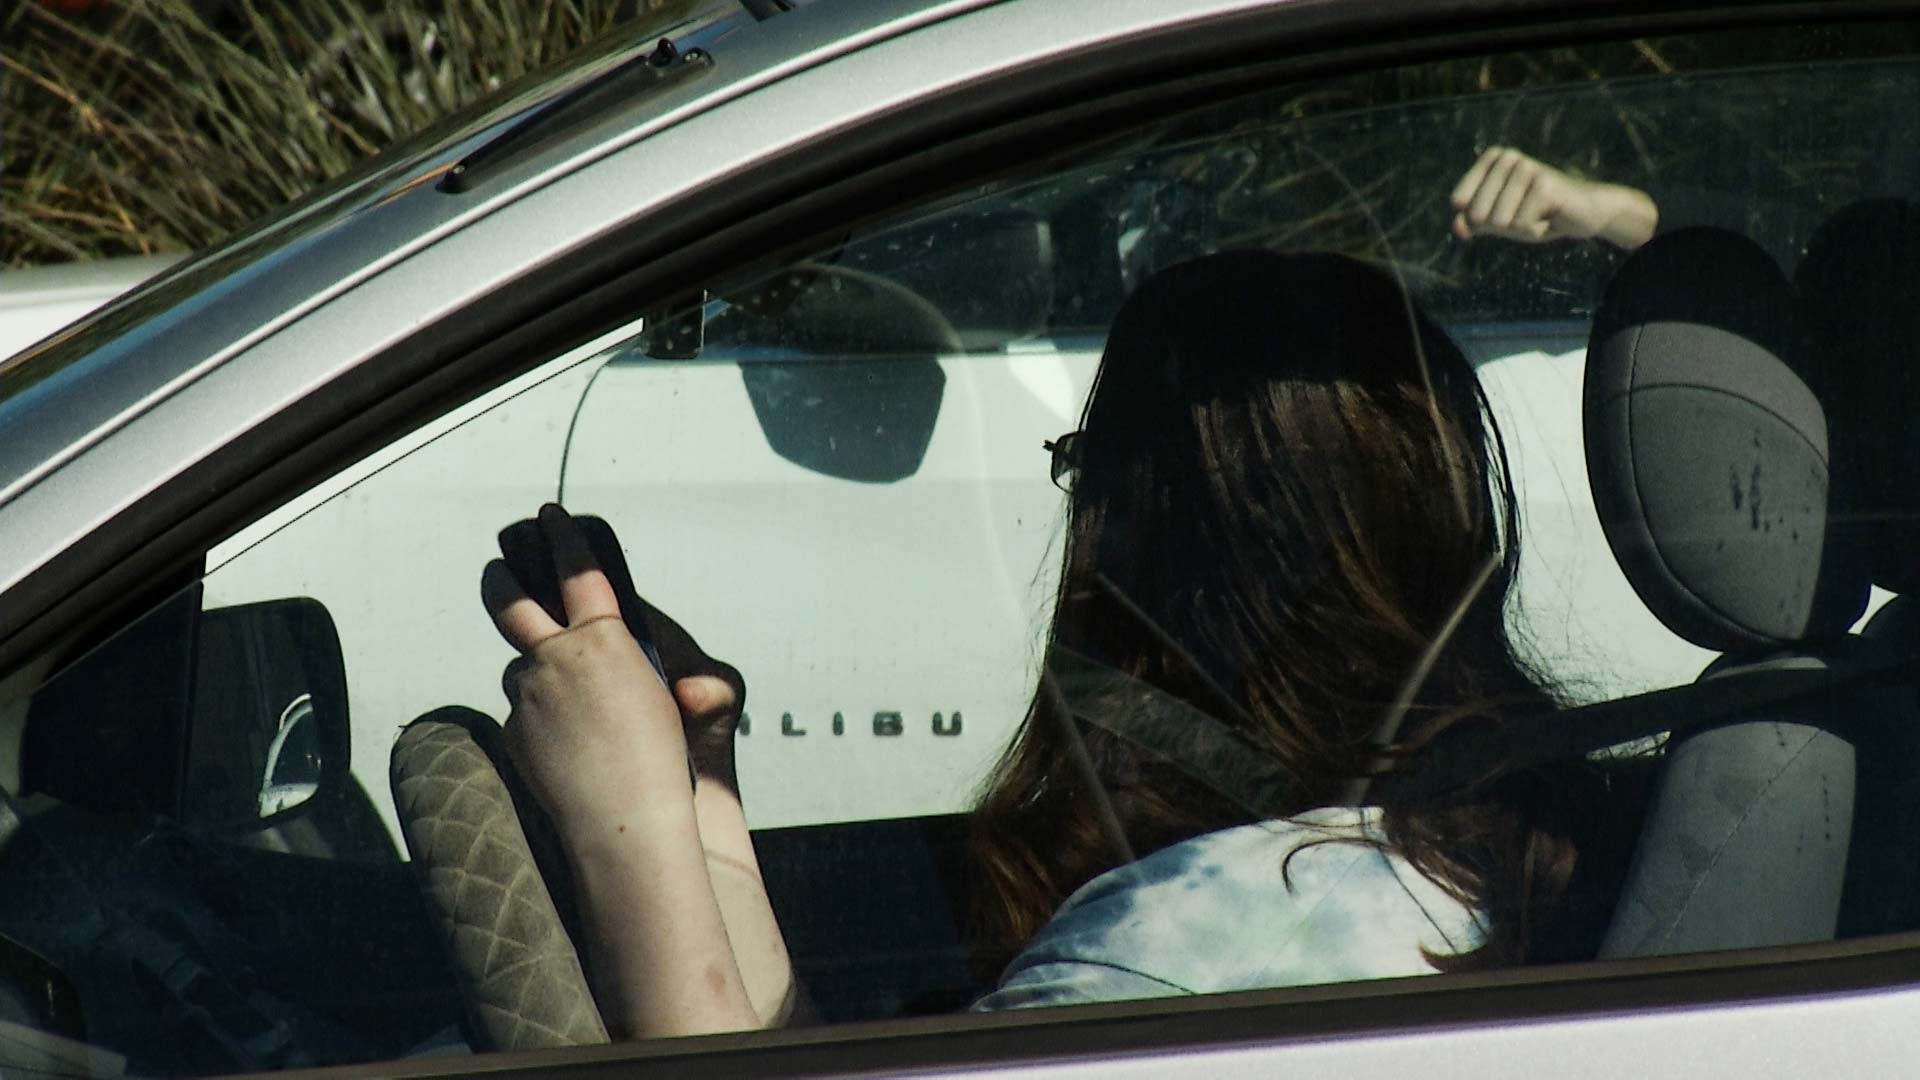 A motorist pulls out a cell phone on a Tucson road.